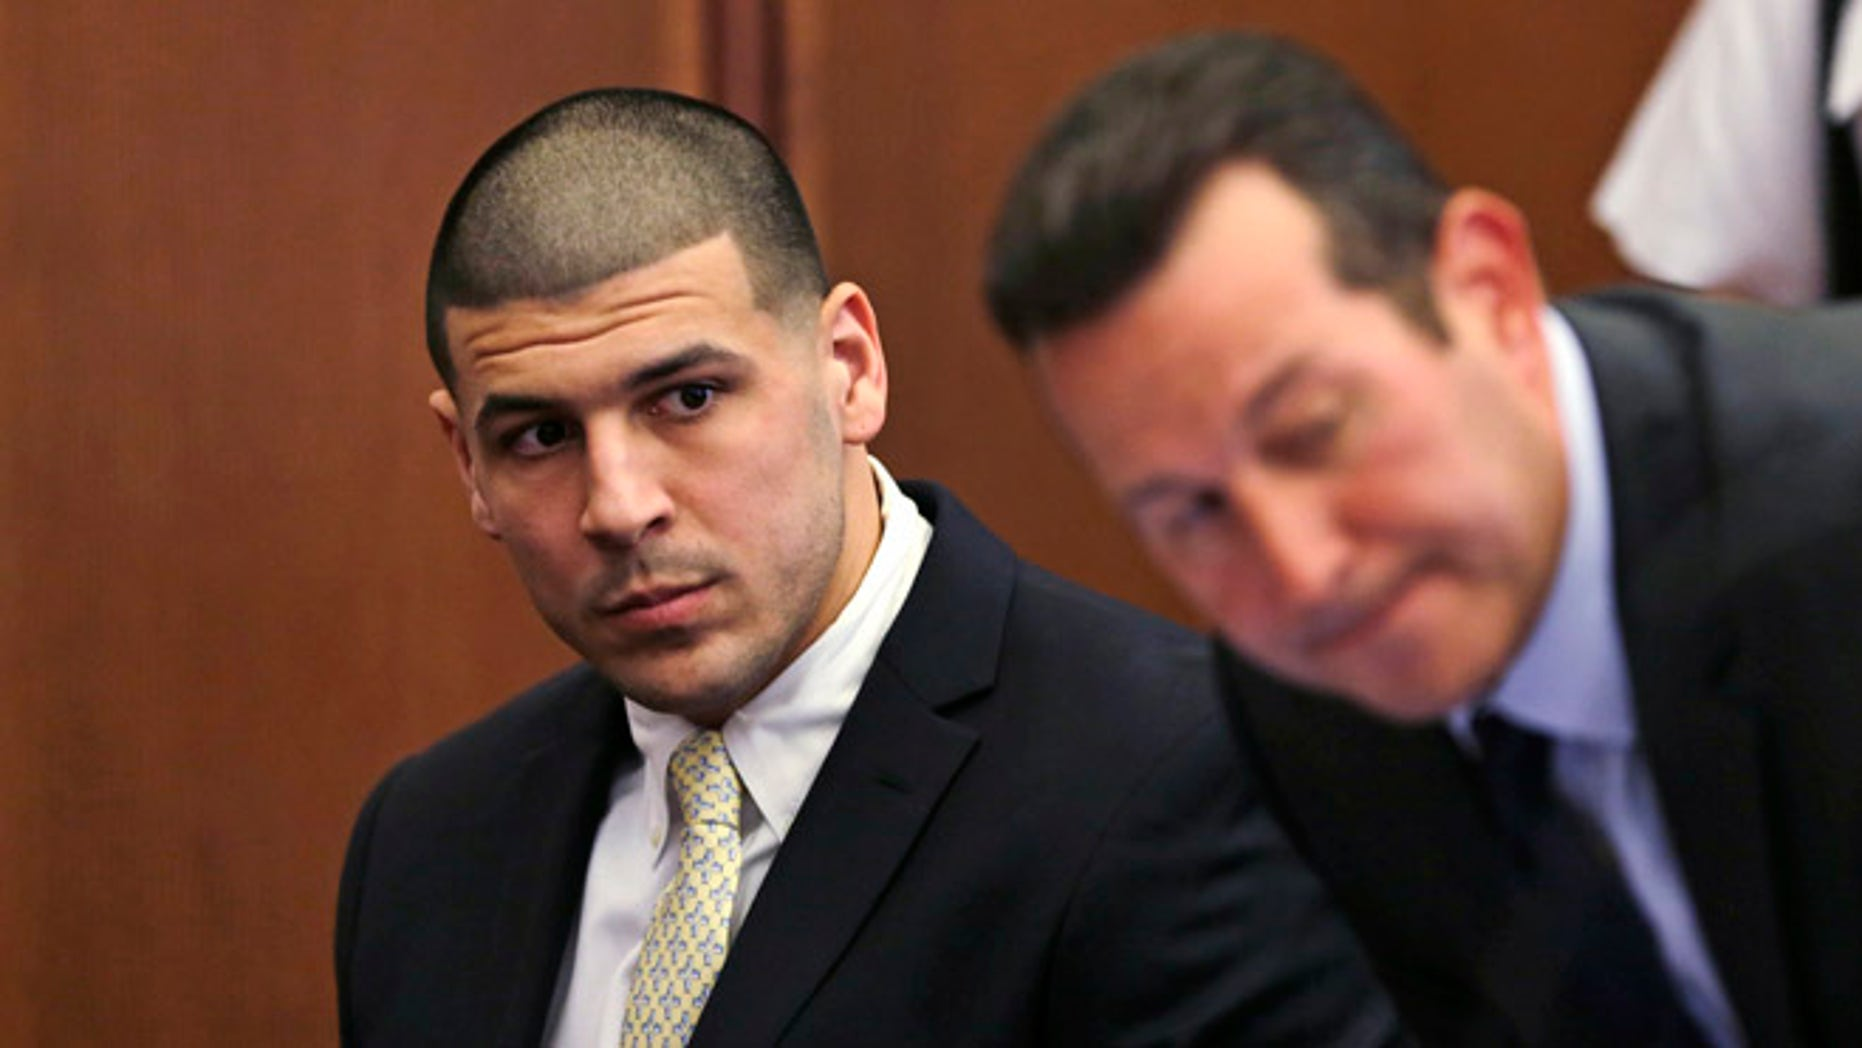 FILE - In this Thursday, July 21, 2016 file photo, Former New England Patriots wide receiver Aaron Hernandez, left, looks down the table at his legal team as his new defense attorney Jose Baez, right, takes a seat during a court appearance at Plymouth Superior Court in Plymouth, Mass. Hernandez is due in Suffolk Superior Court on Tuesday, Aug. 16, for a hearing in the 2012 killings of two men outside a Boston nightclub. Hernandez has pleaded not guilty. (AP Photo/Charles Krupa, Pool, File)